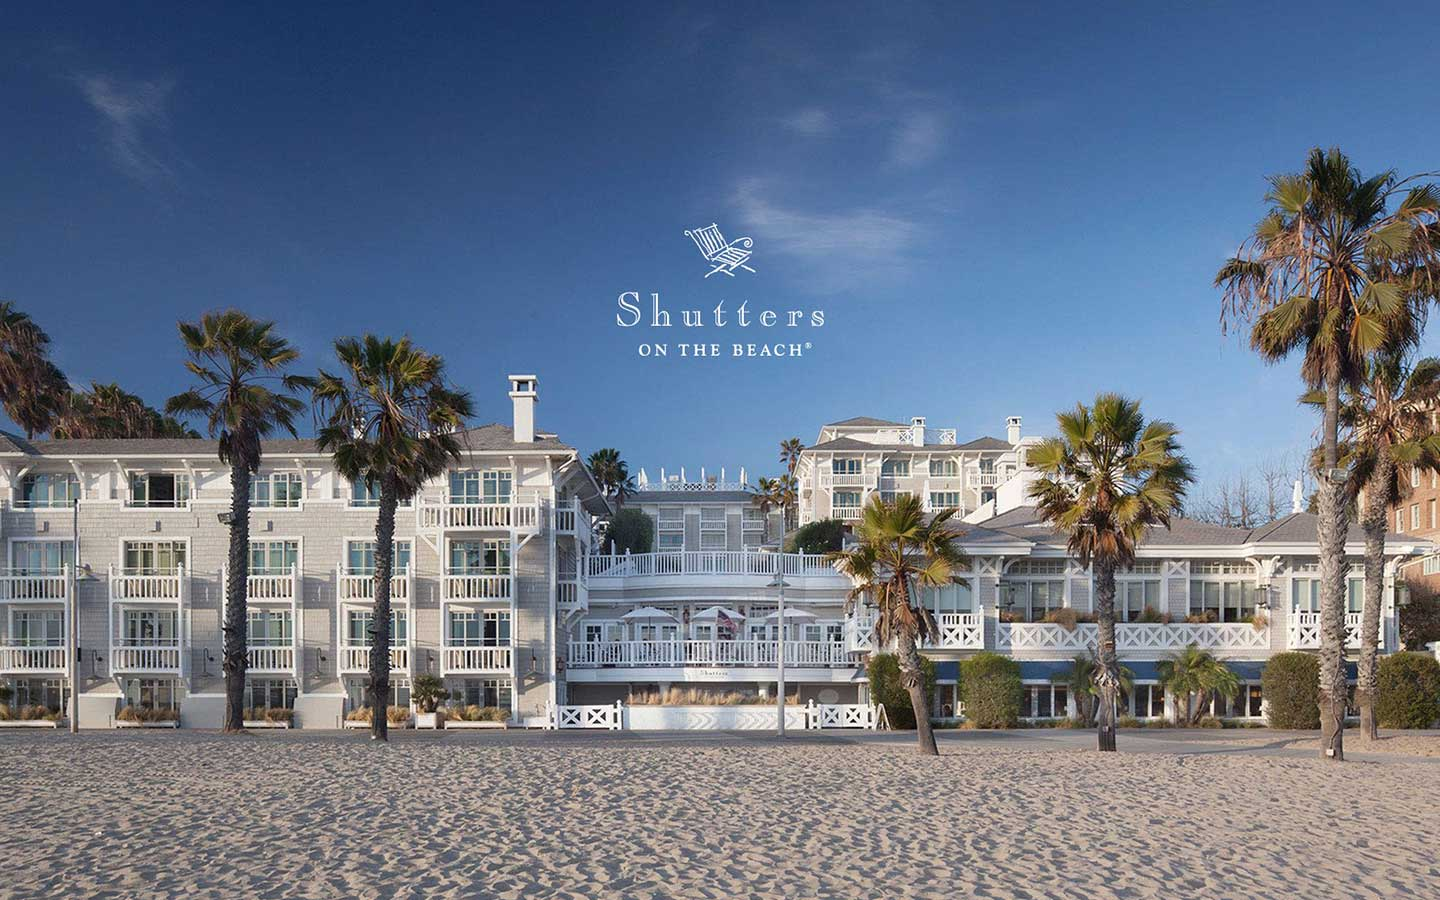 Out of Town Patients - stay at Shutters on the Beach